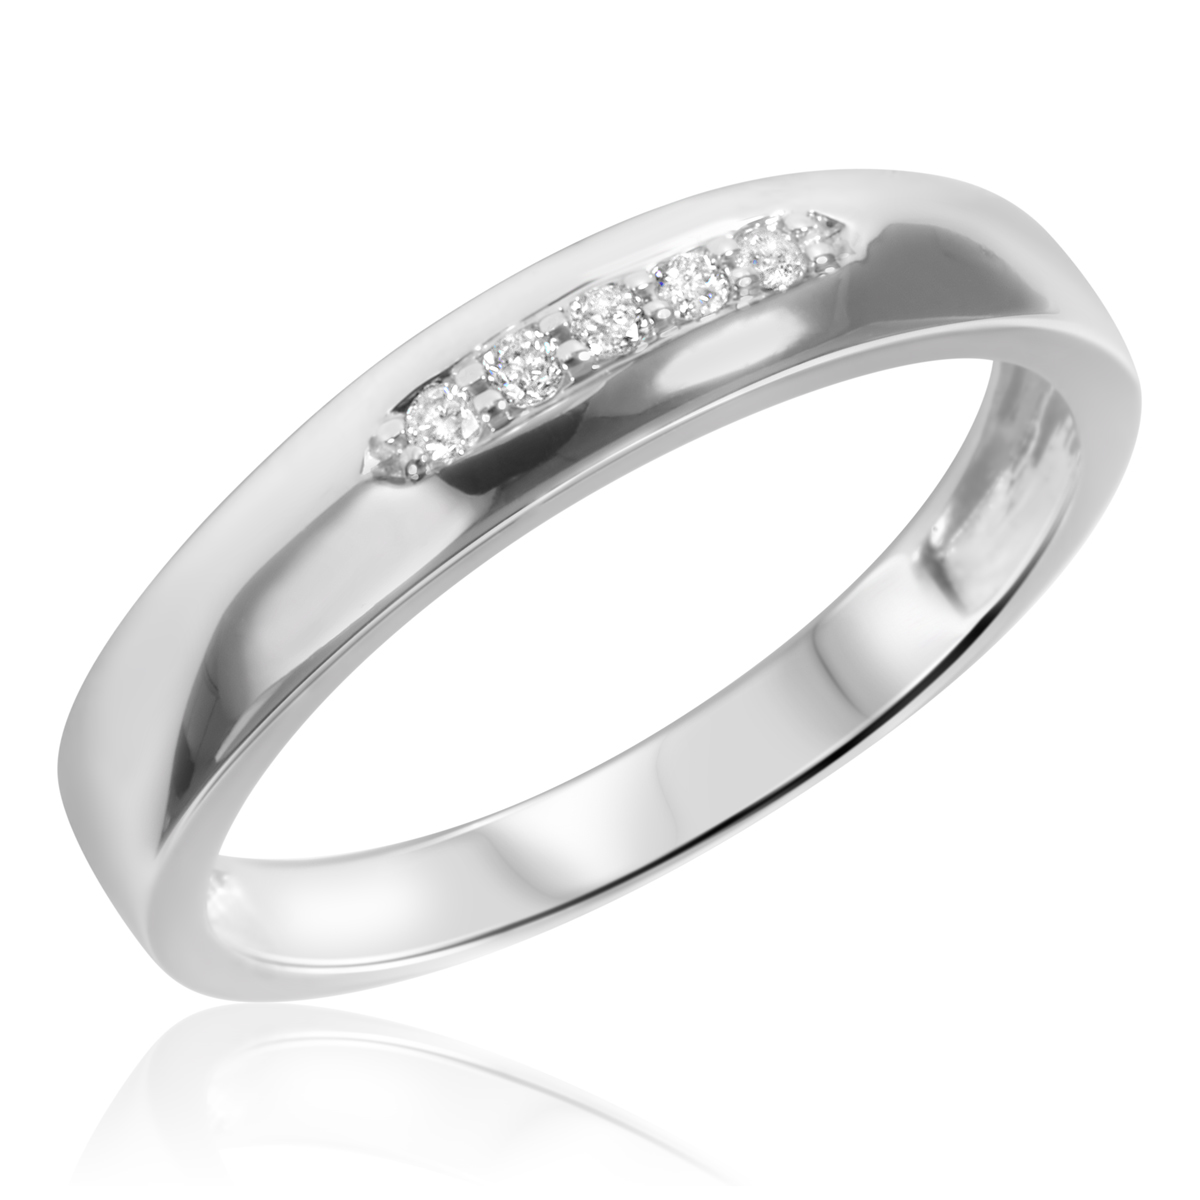 1 5 carat t w his and hers wedding band set 10k